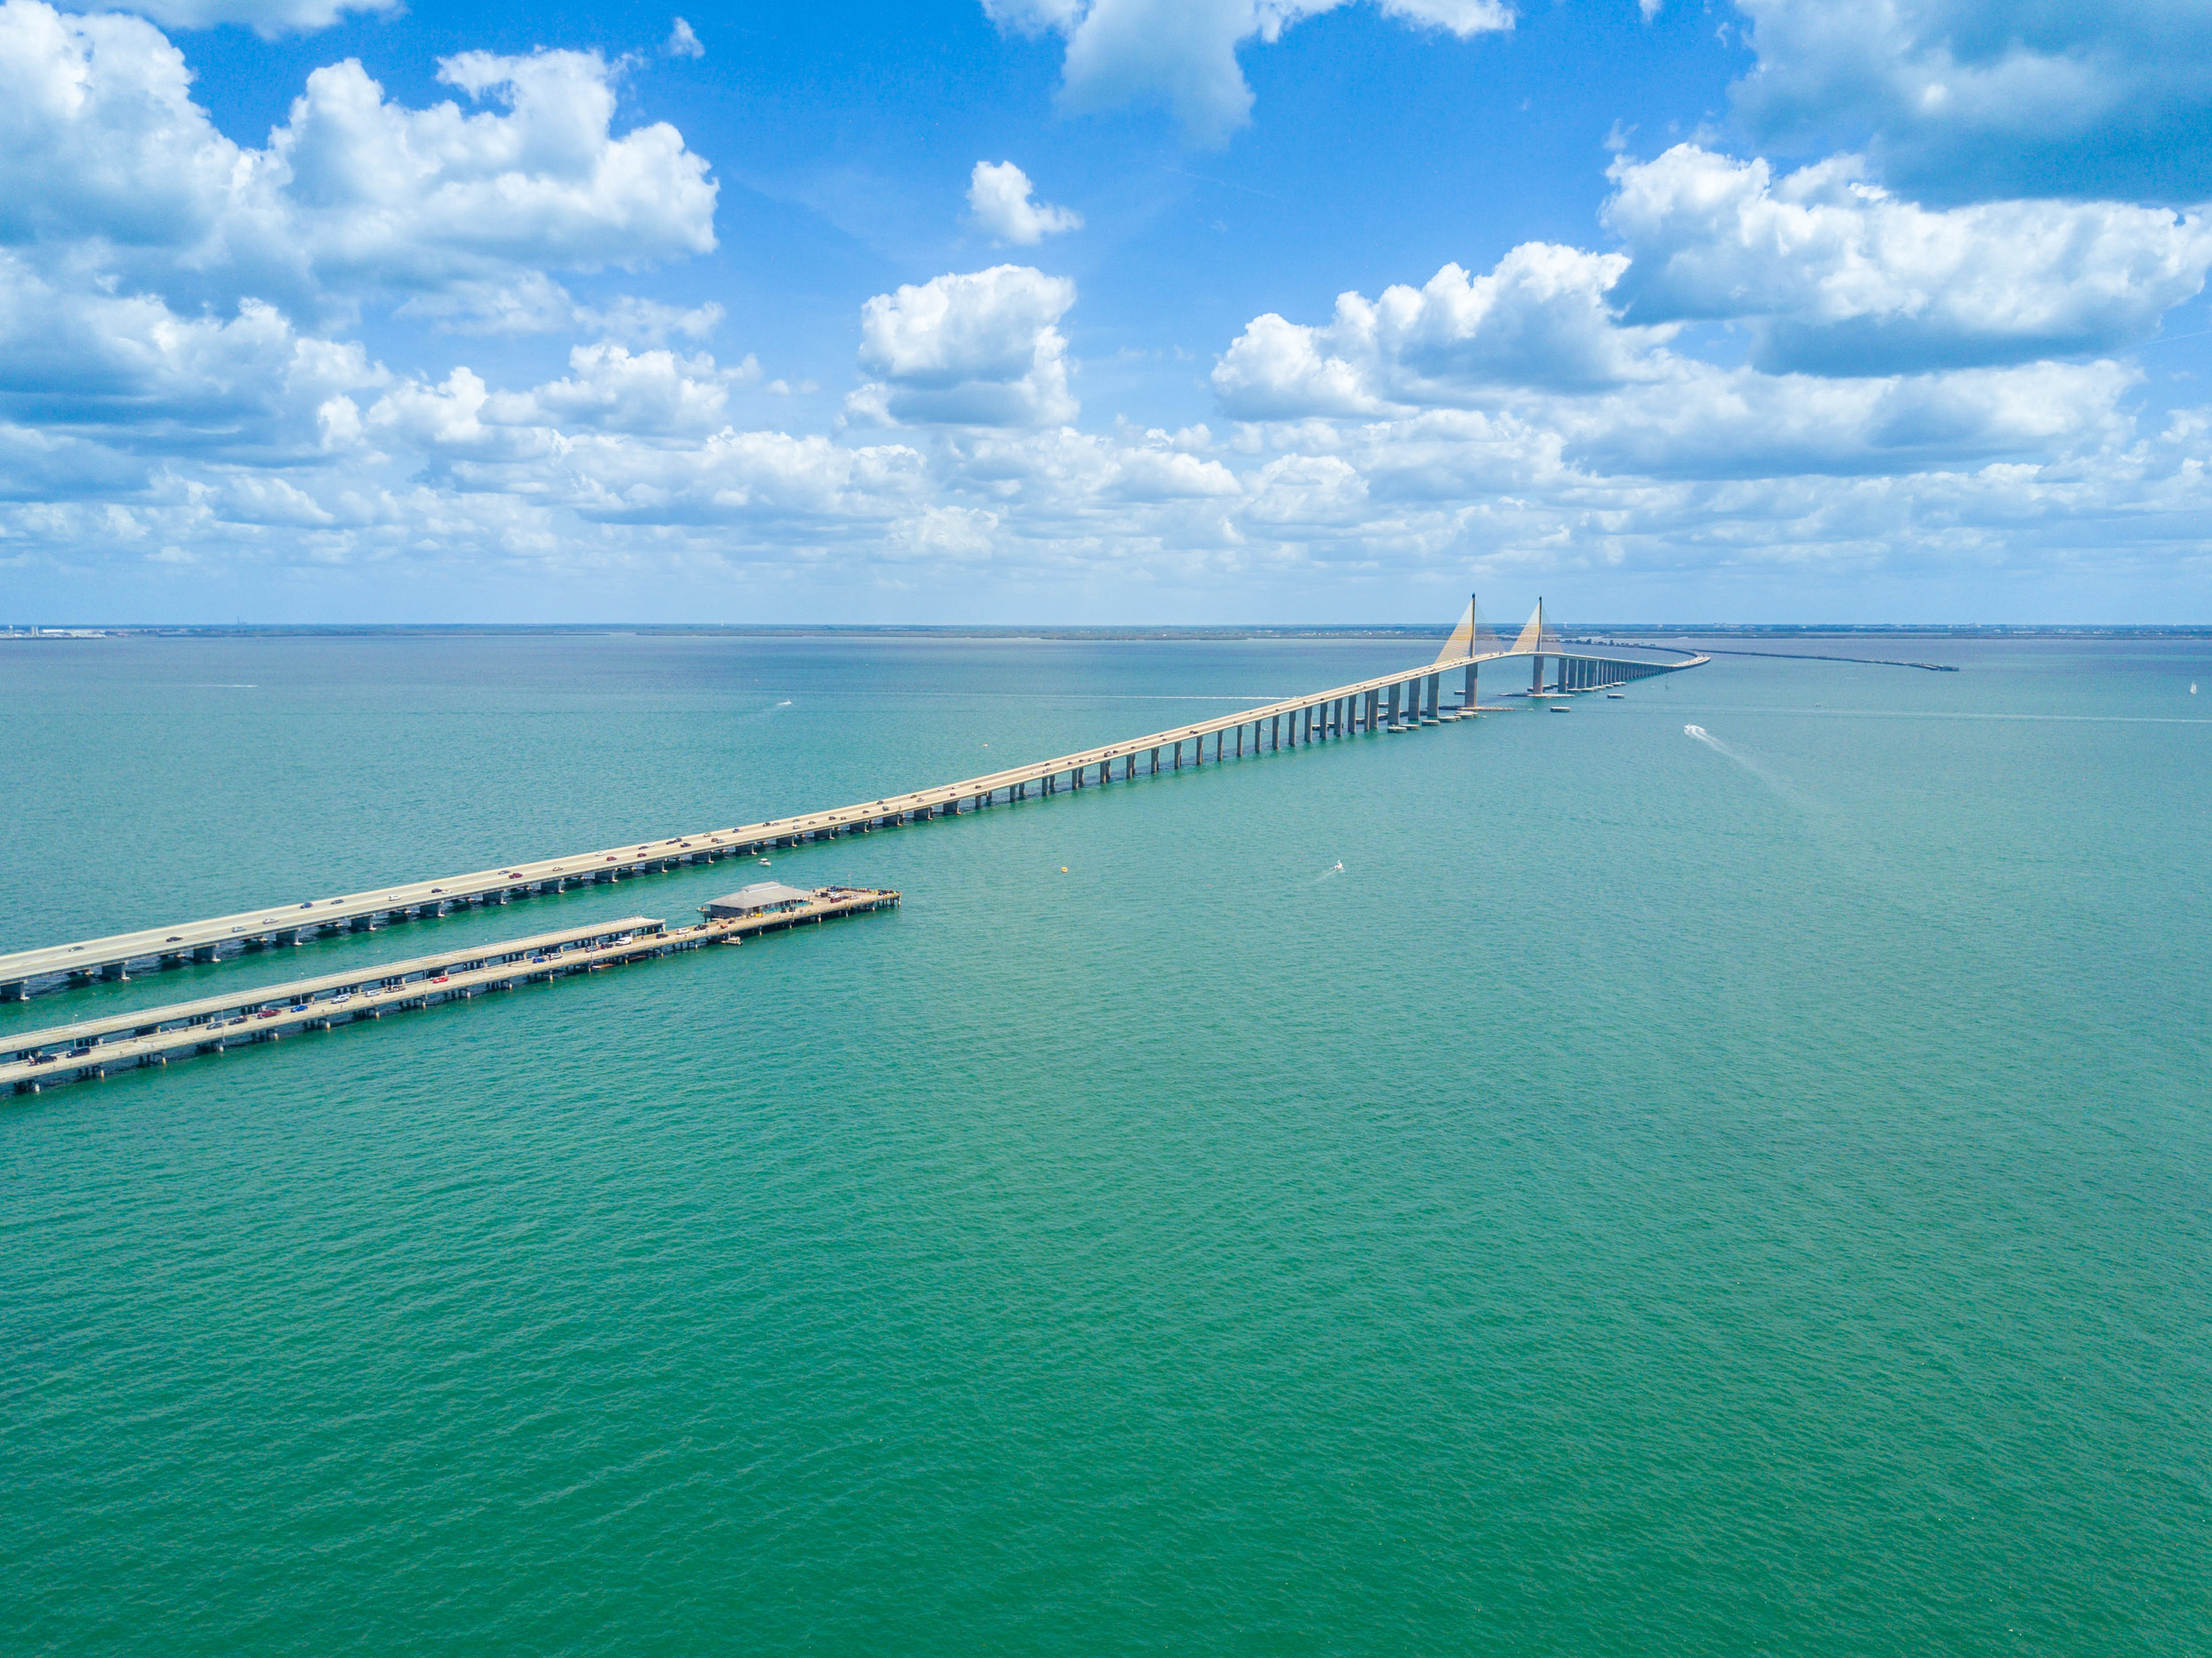 Bridge to Bradenton